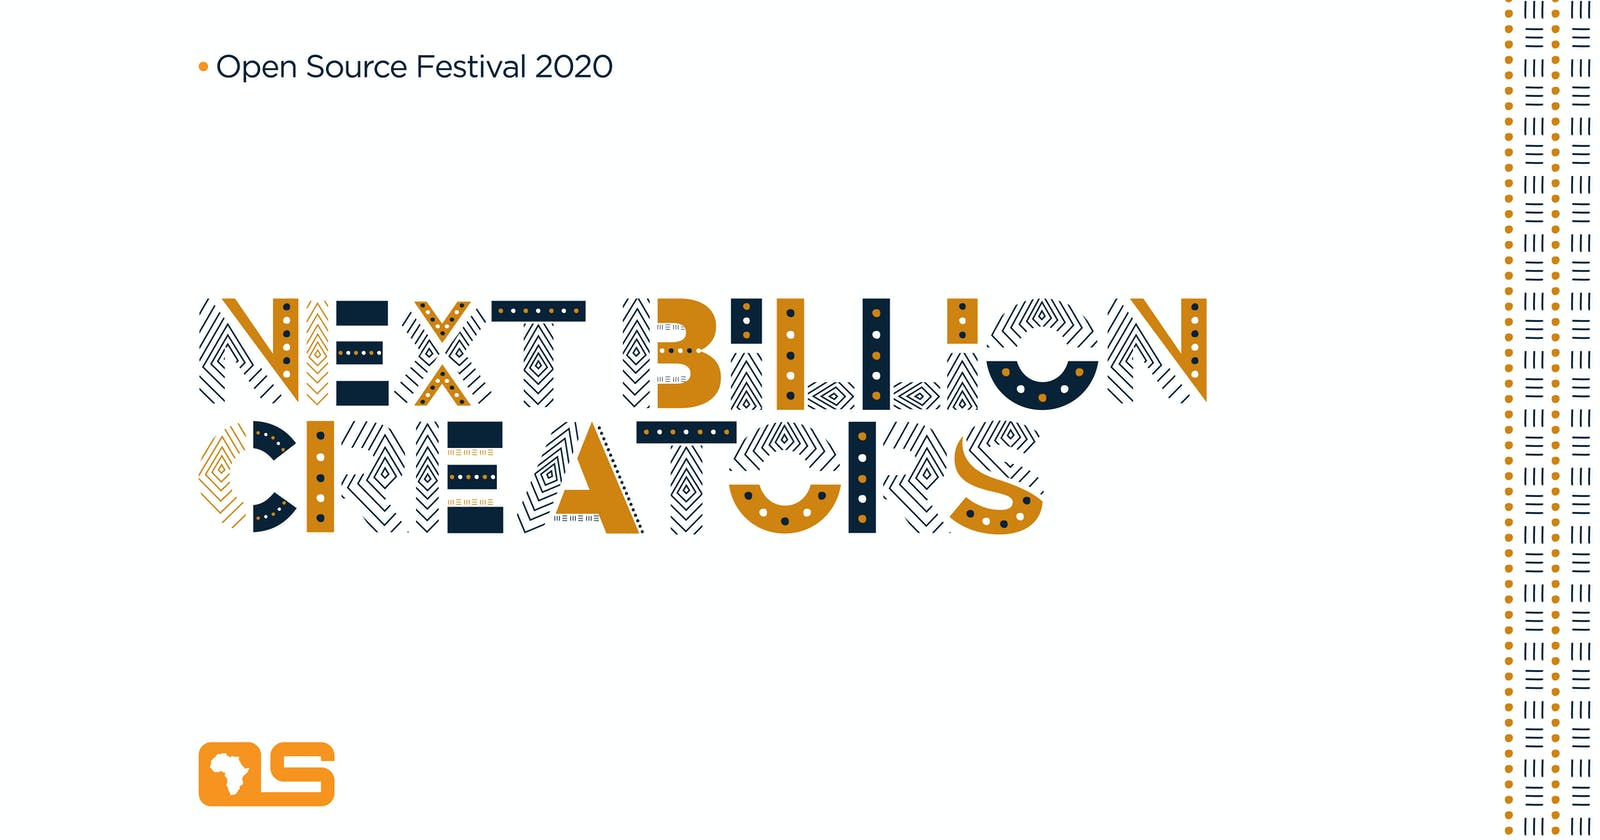 Open Source Festival 2020 is Upon Us 🎉